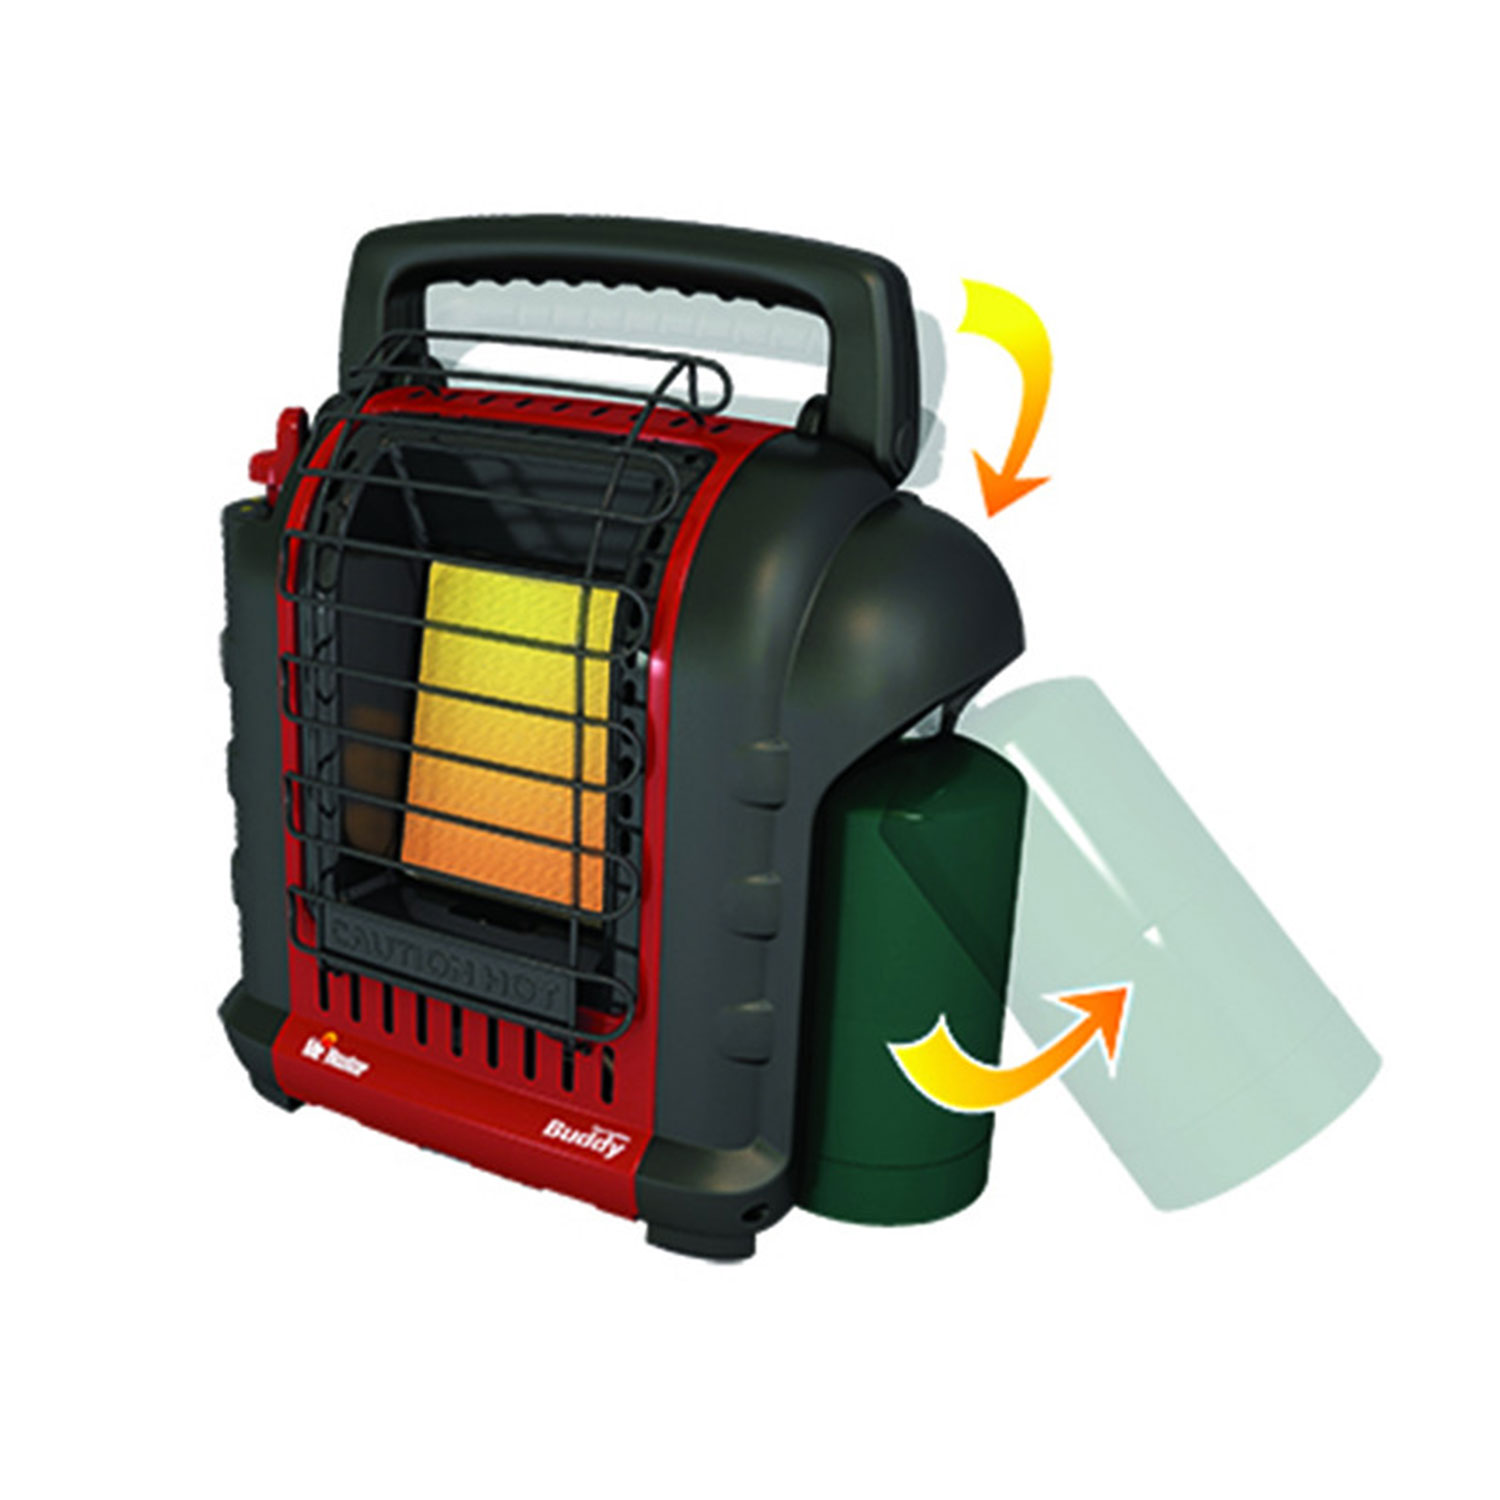 Mr. Heater Portable Buddy Indoor Outdoor Propane Garage ...